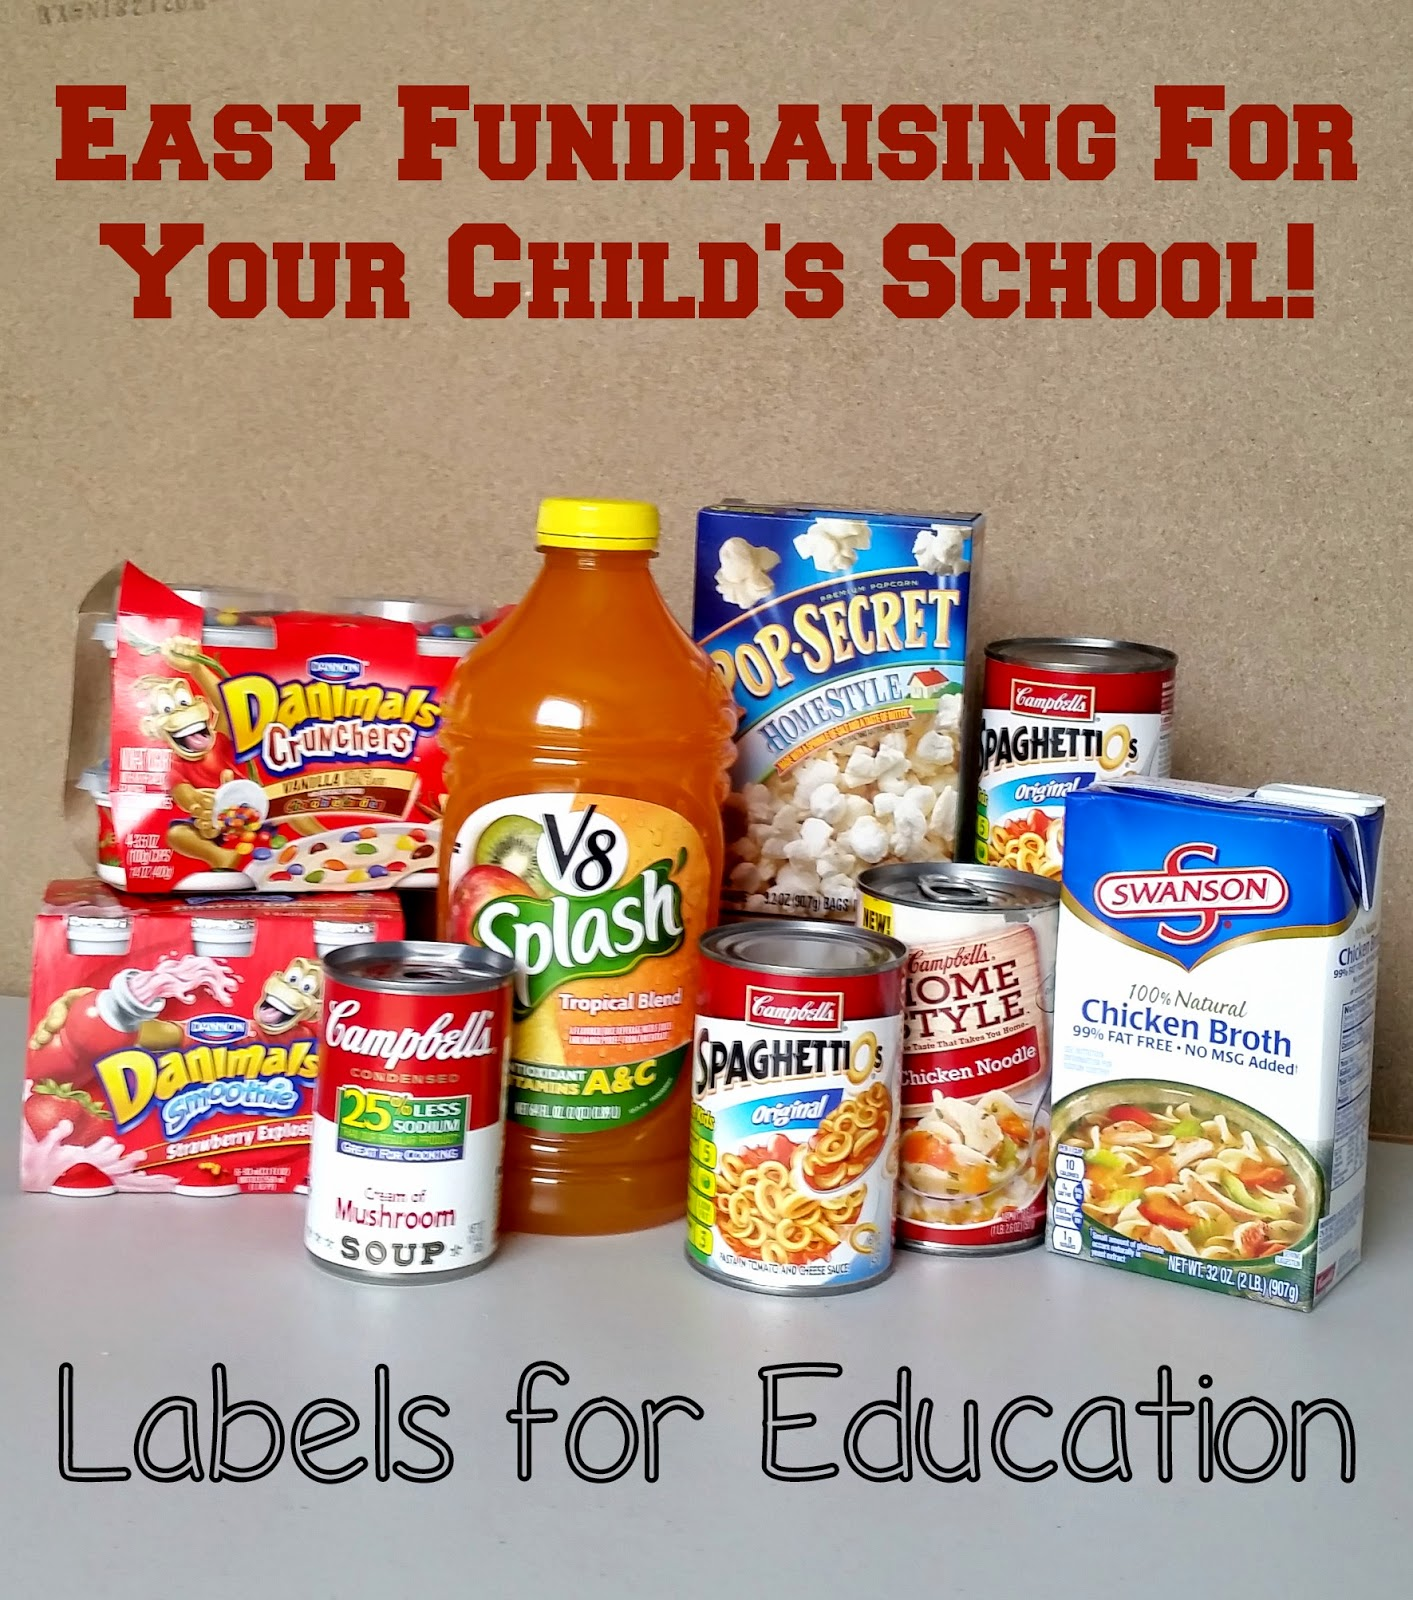 Easy Fundraising for your child's school with Labels for Education® #Labels4Edu #CollectiveBias